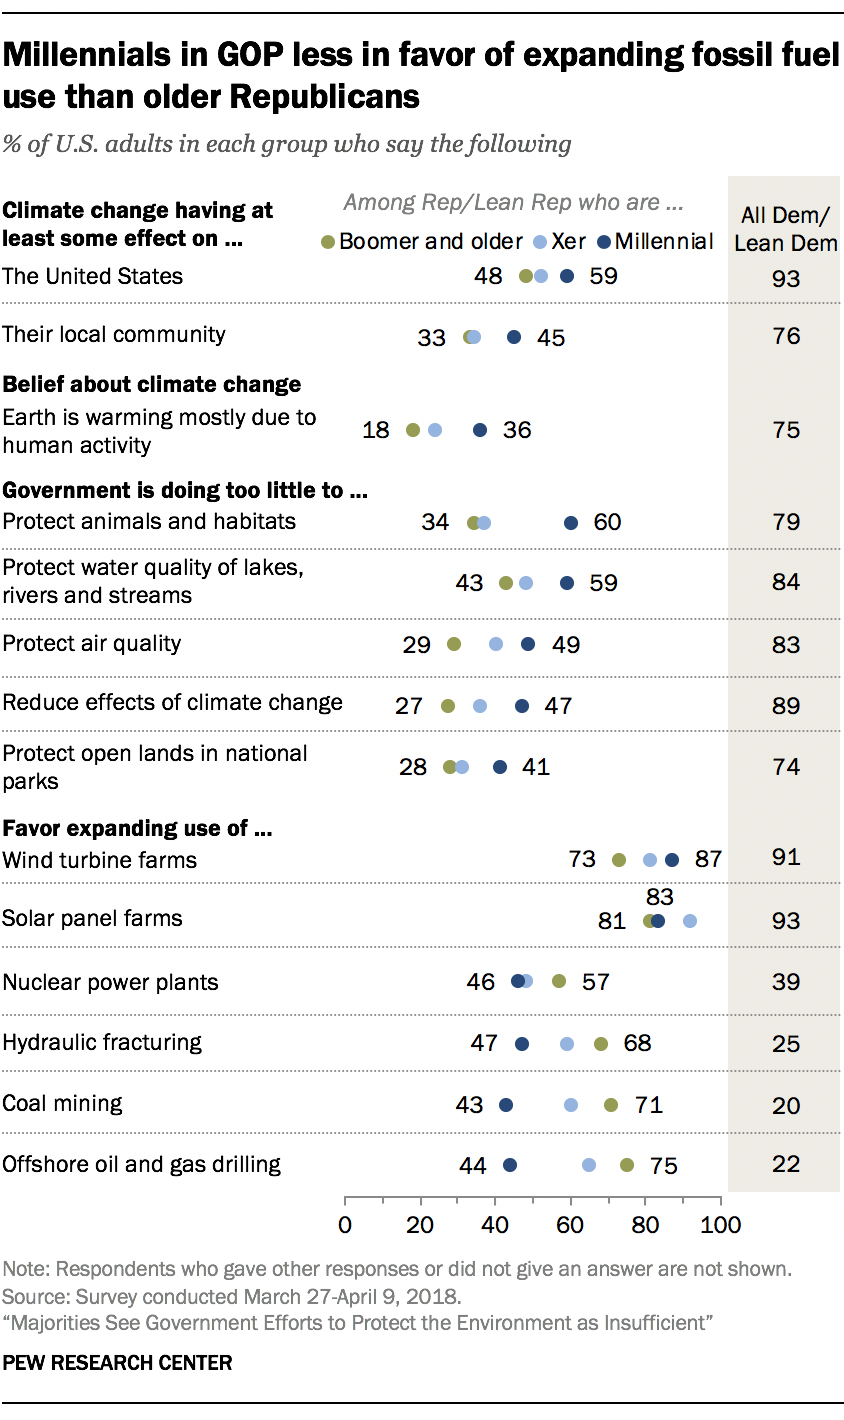 Millennials in GOP less in favor of expanding fossil fuel use than older Republicans